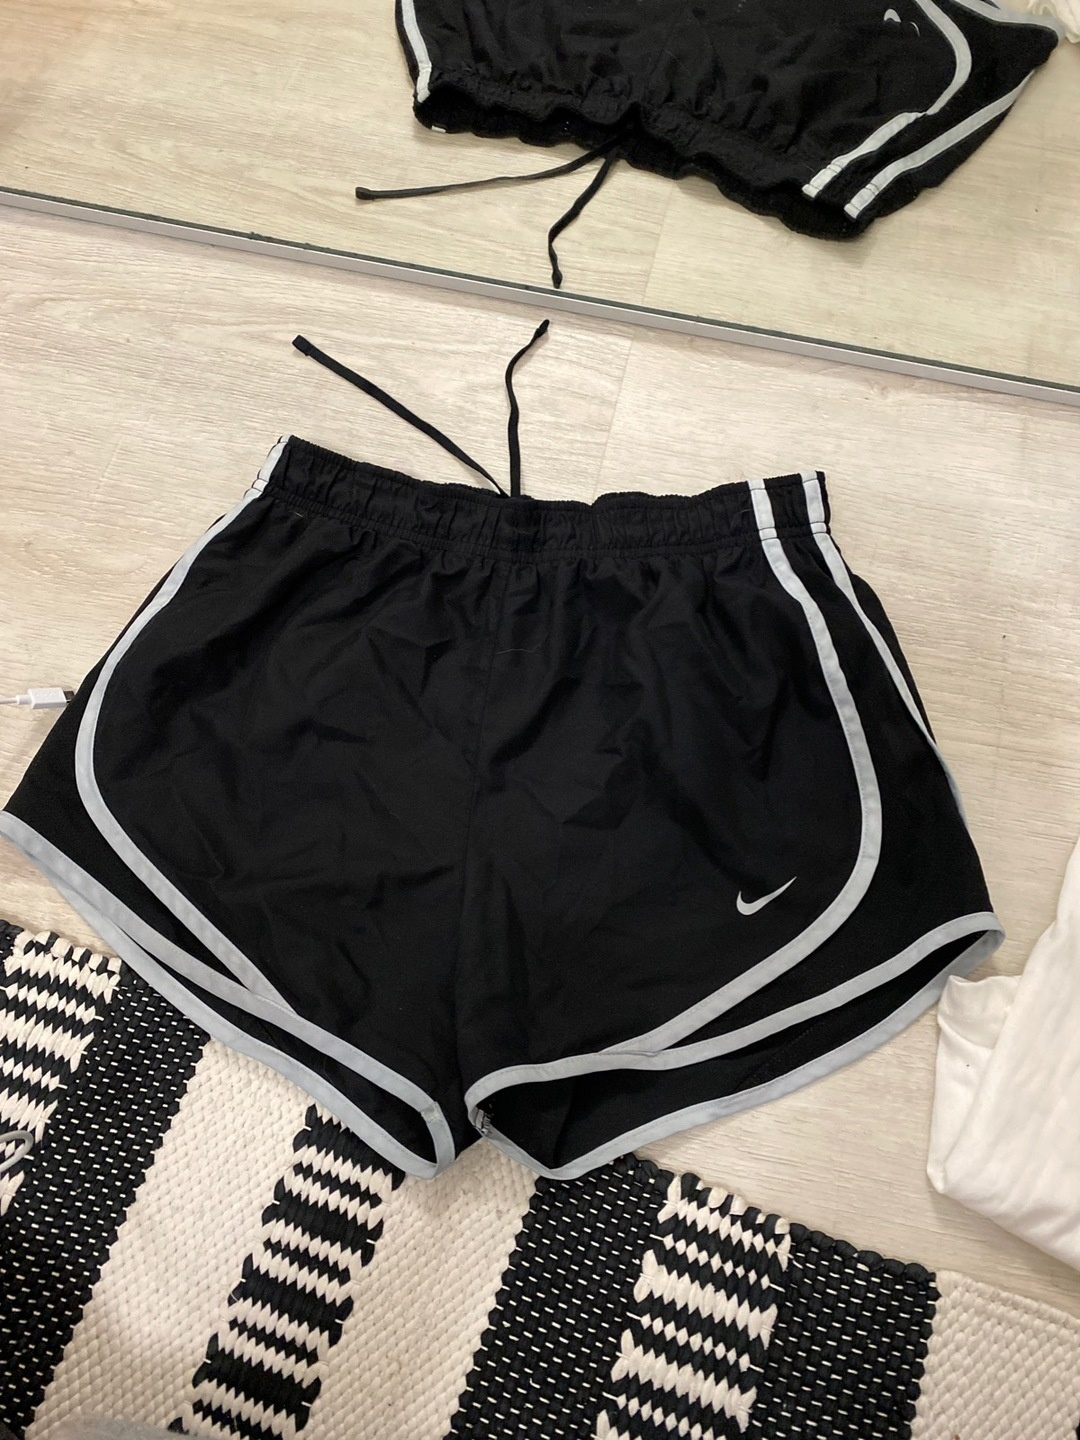 Women's shorts - NIKE photo 1